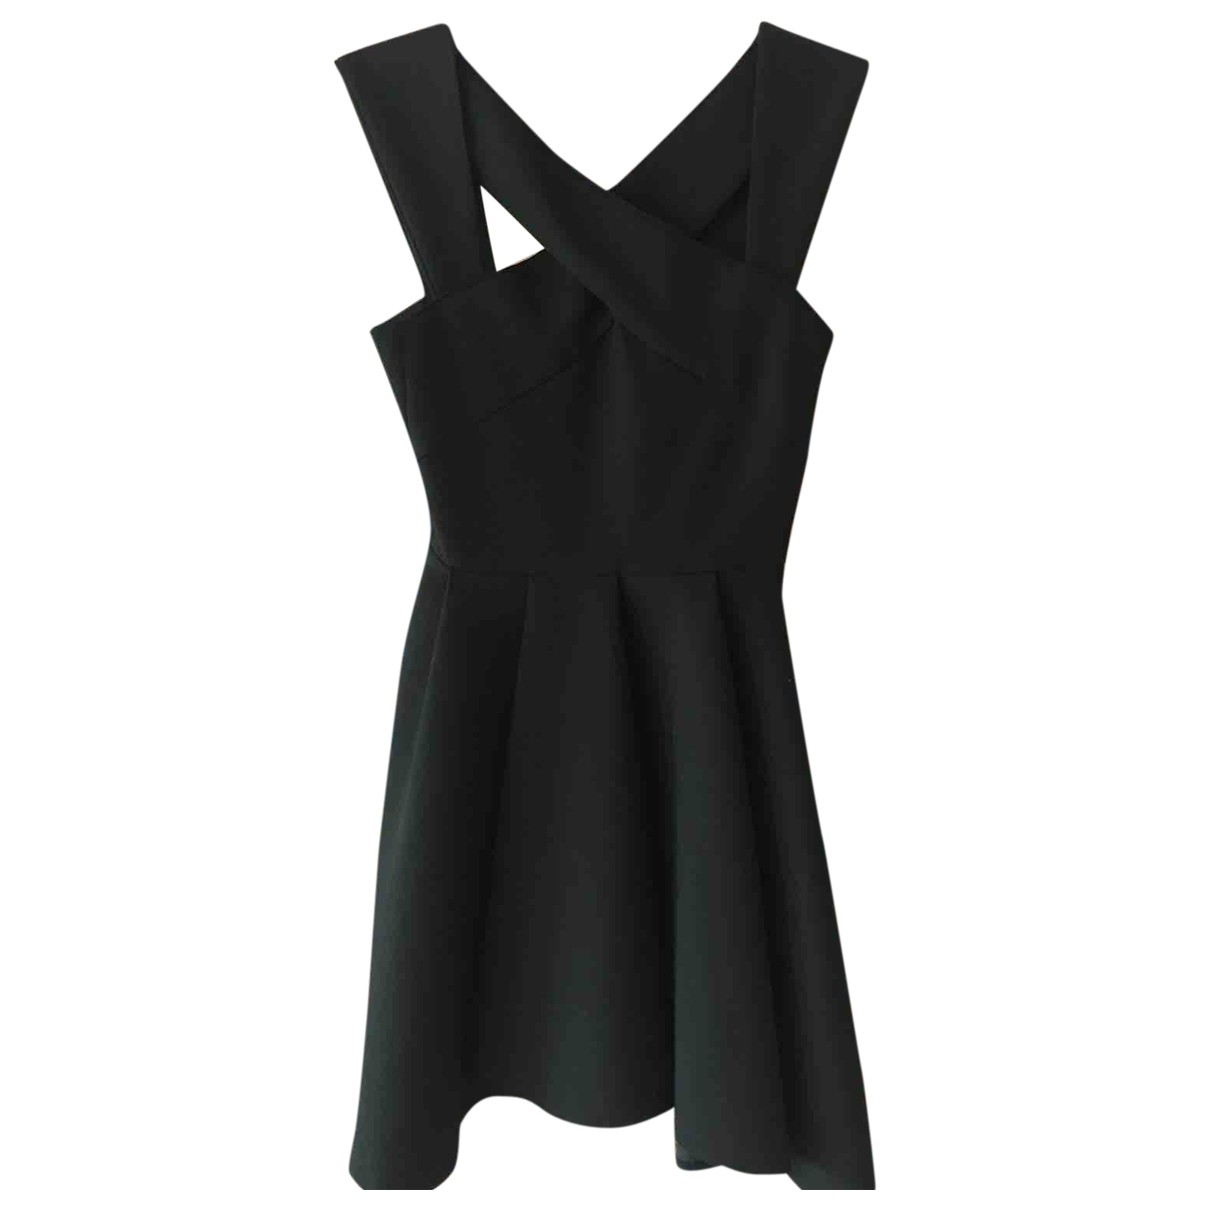 Maje \N Black dress for Women 36 FR